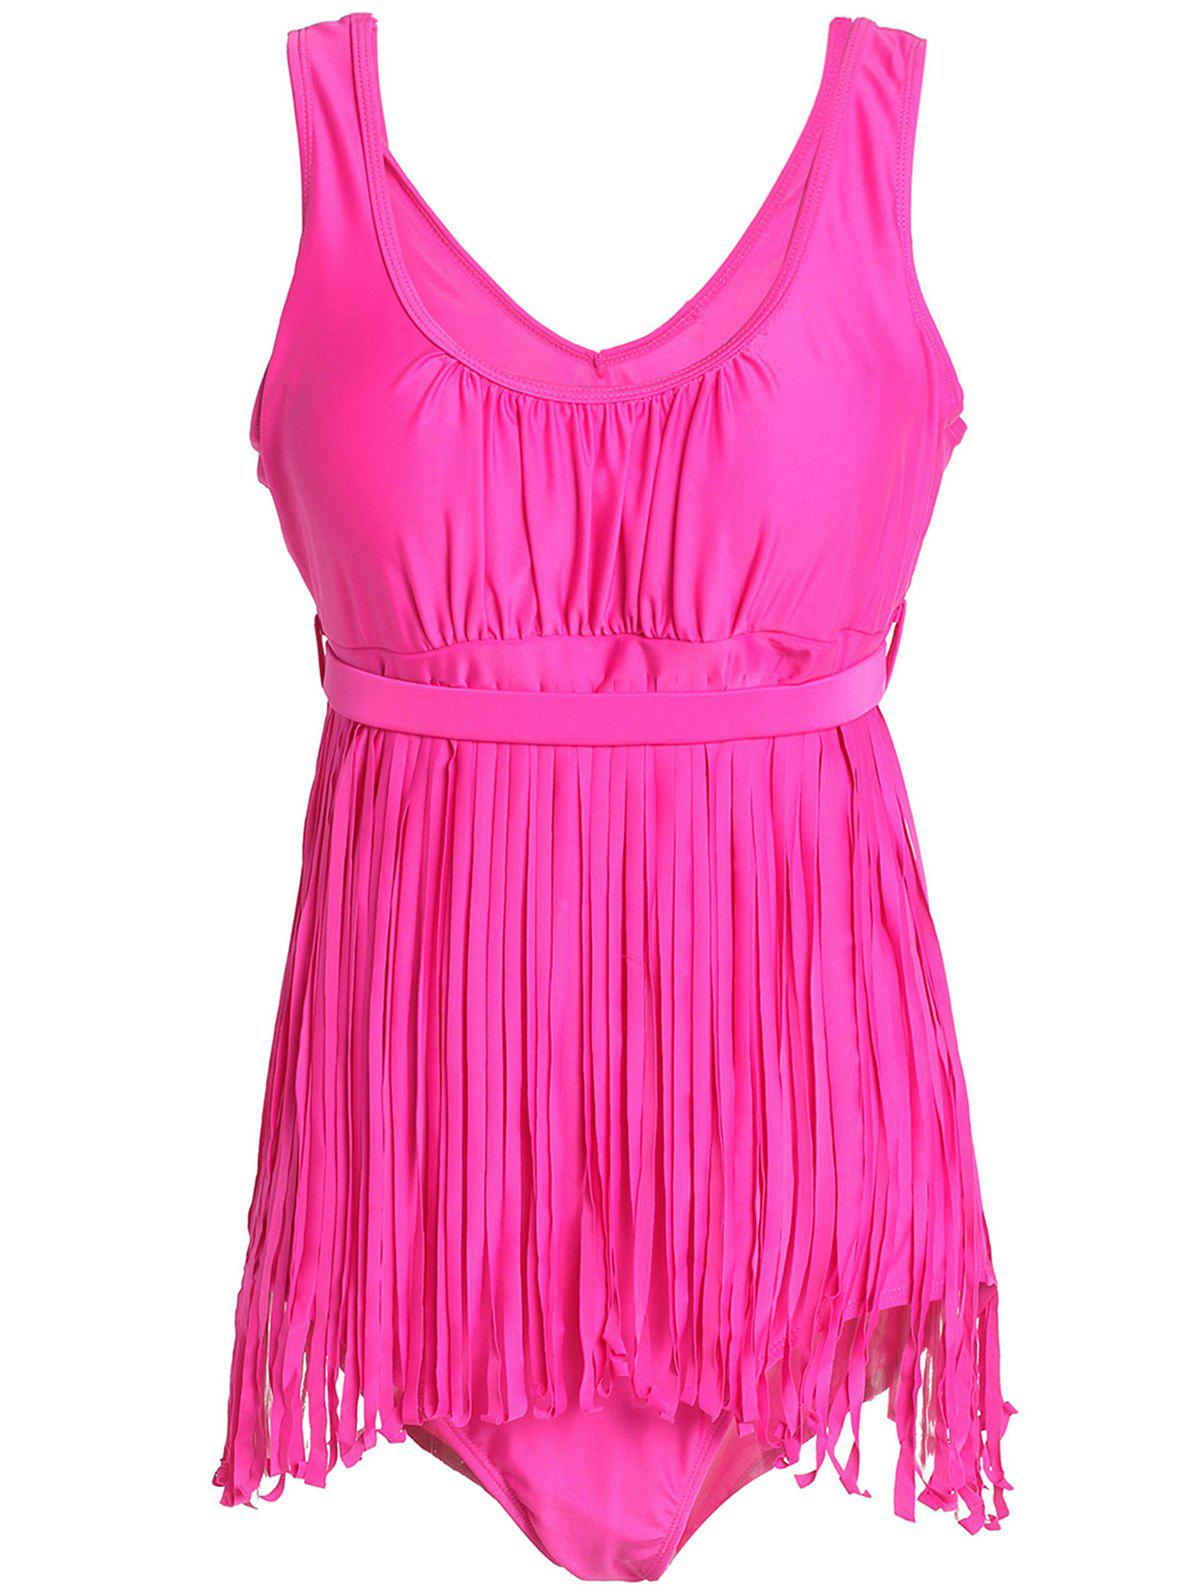 Scoop Neck Sleeveless Fringed Solid Color Women's Swimwear - ROSE 5XL